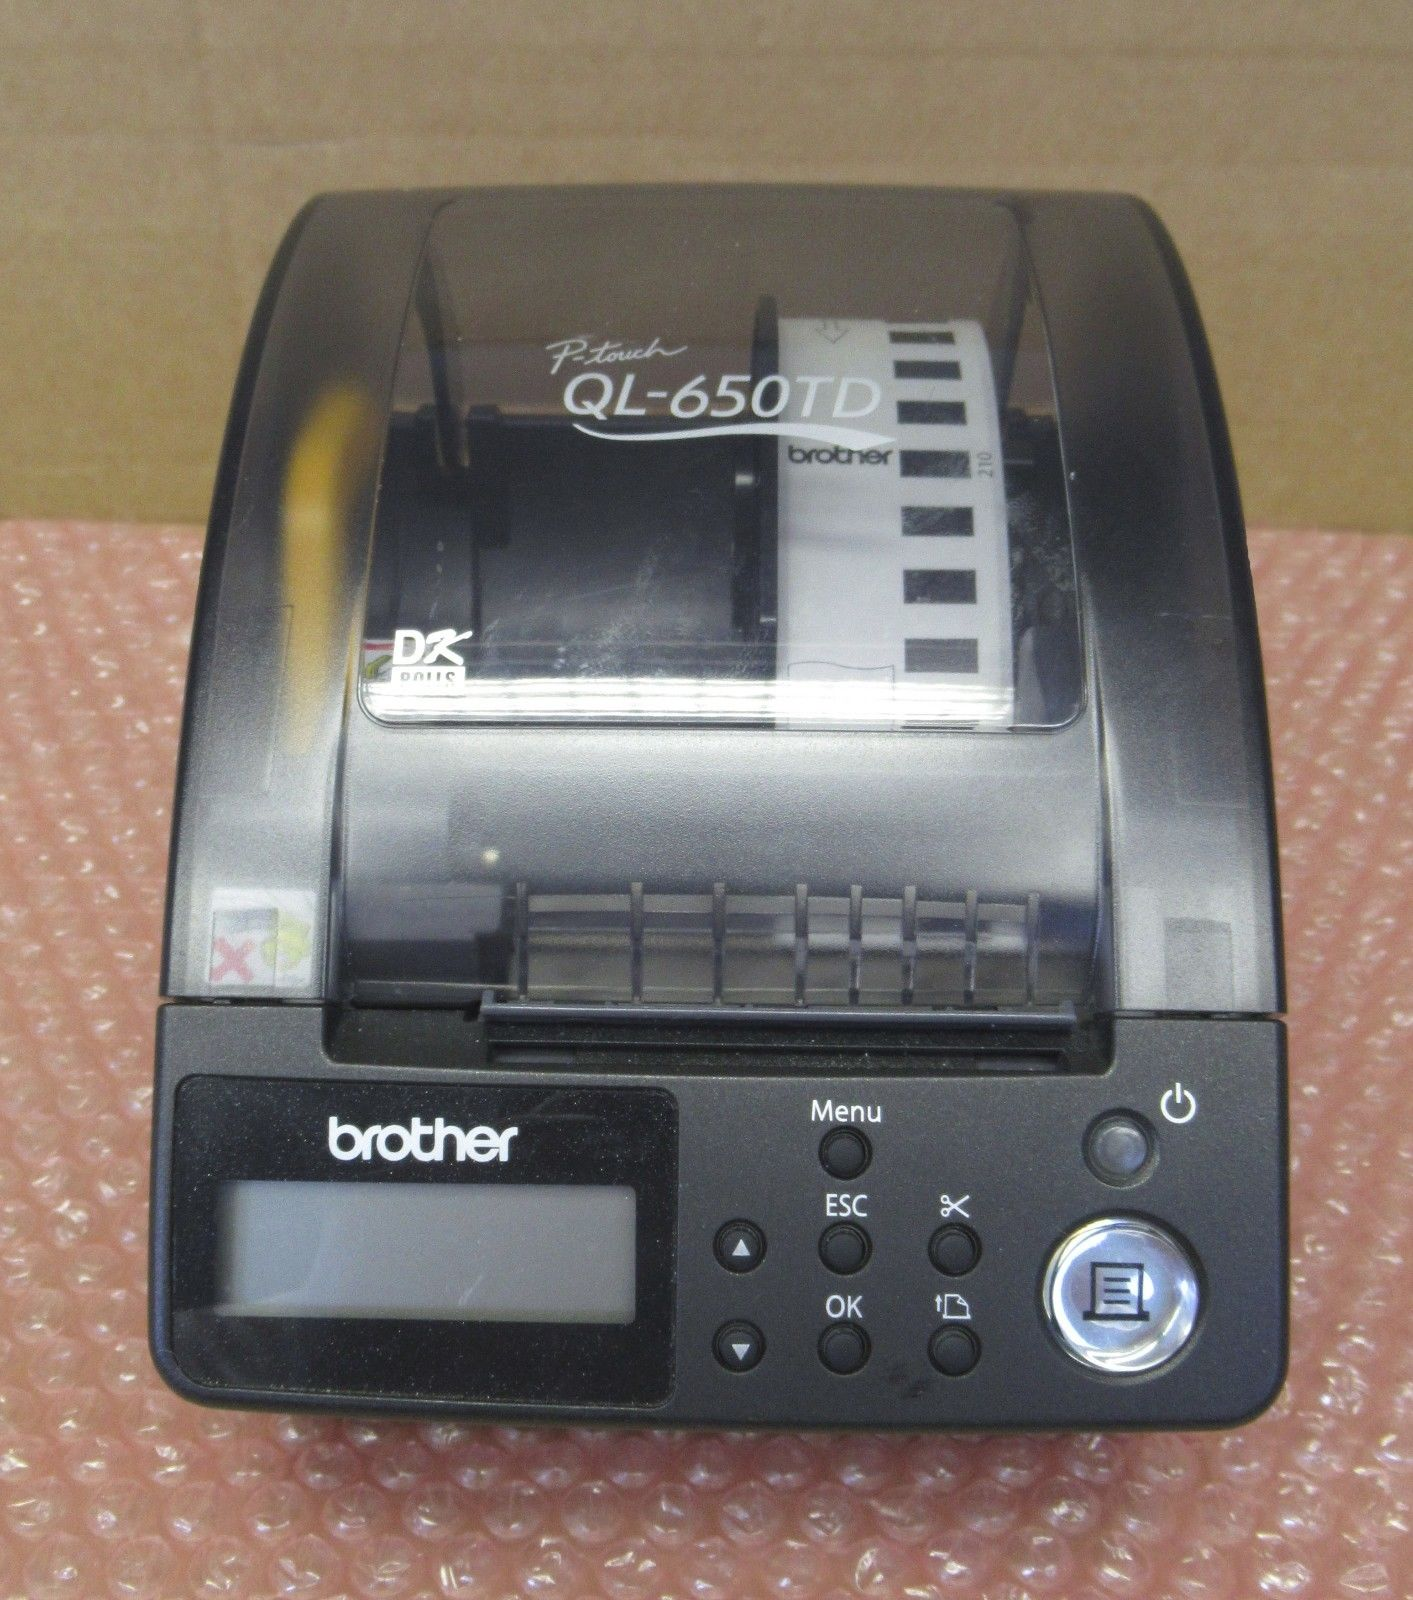 BROTHER P-TOUCH QL-650TD DOWNLOAD DRIVERS